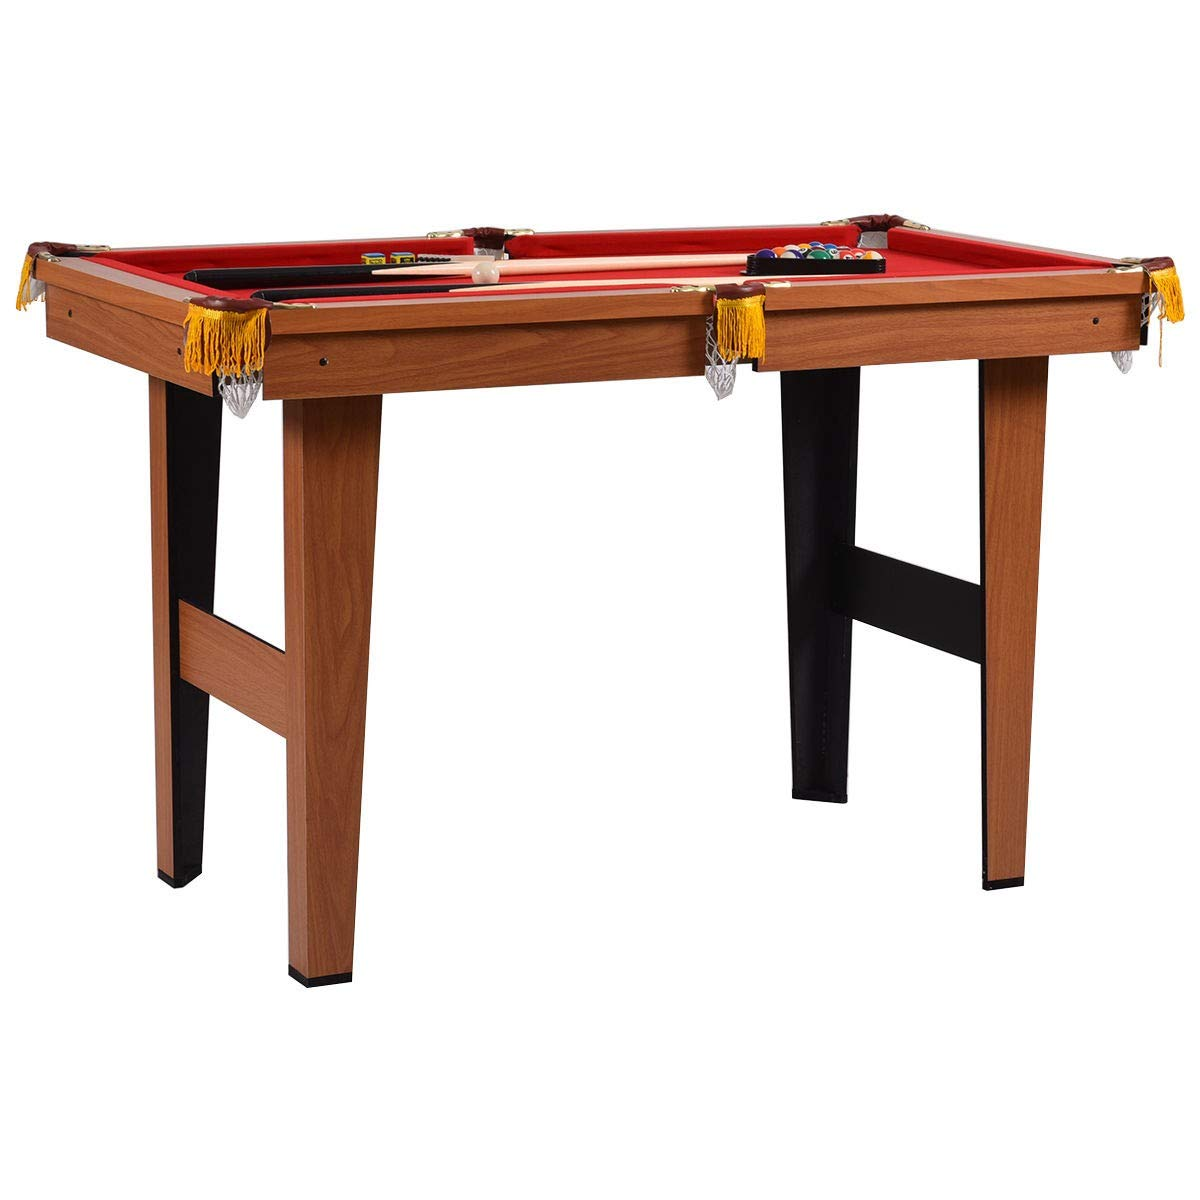 48'' Mini Table Top Pool Table Game Billiard Set by Abbeydh